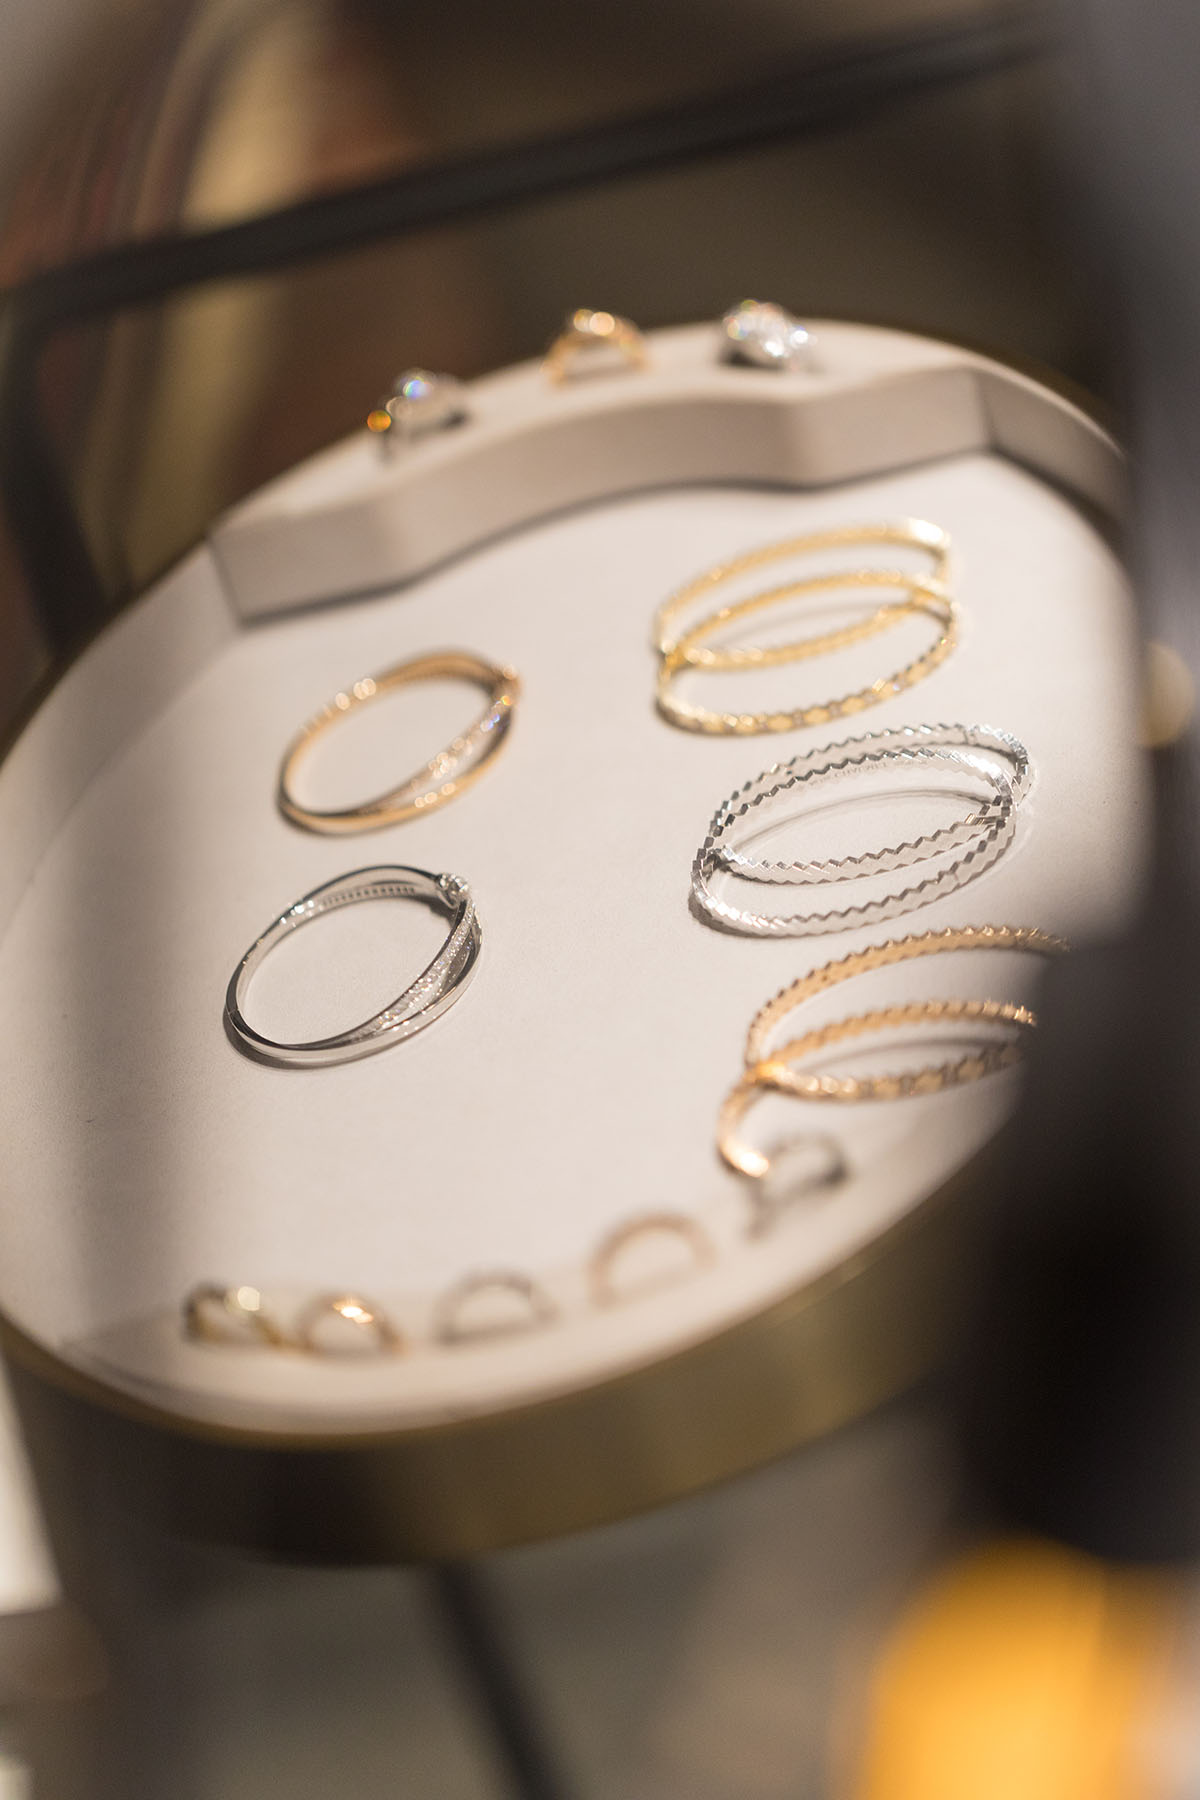 Stacked bracelet display from Chaumet Paris by Loesje Kessels Event Photographer Dubai